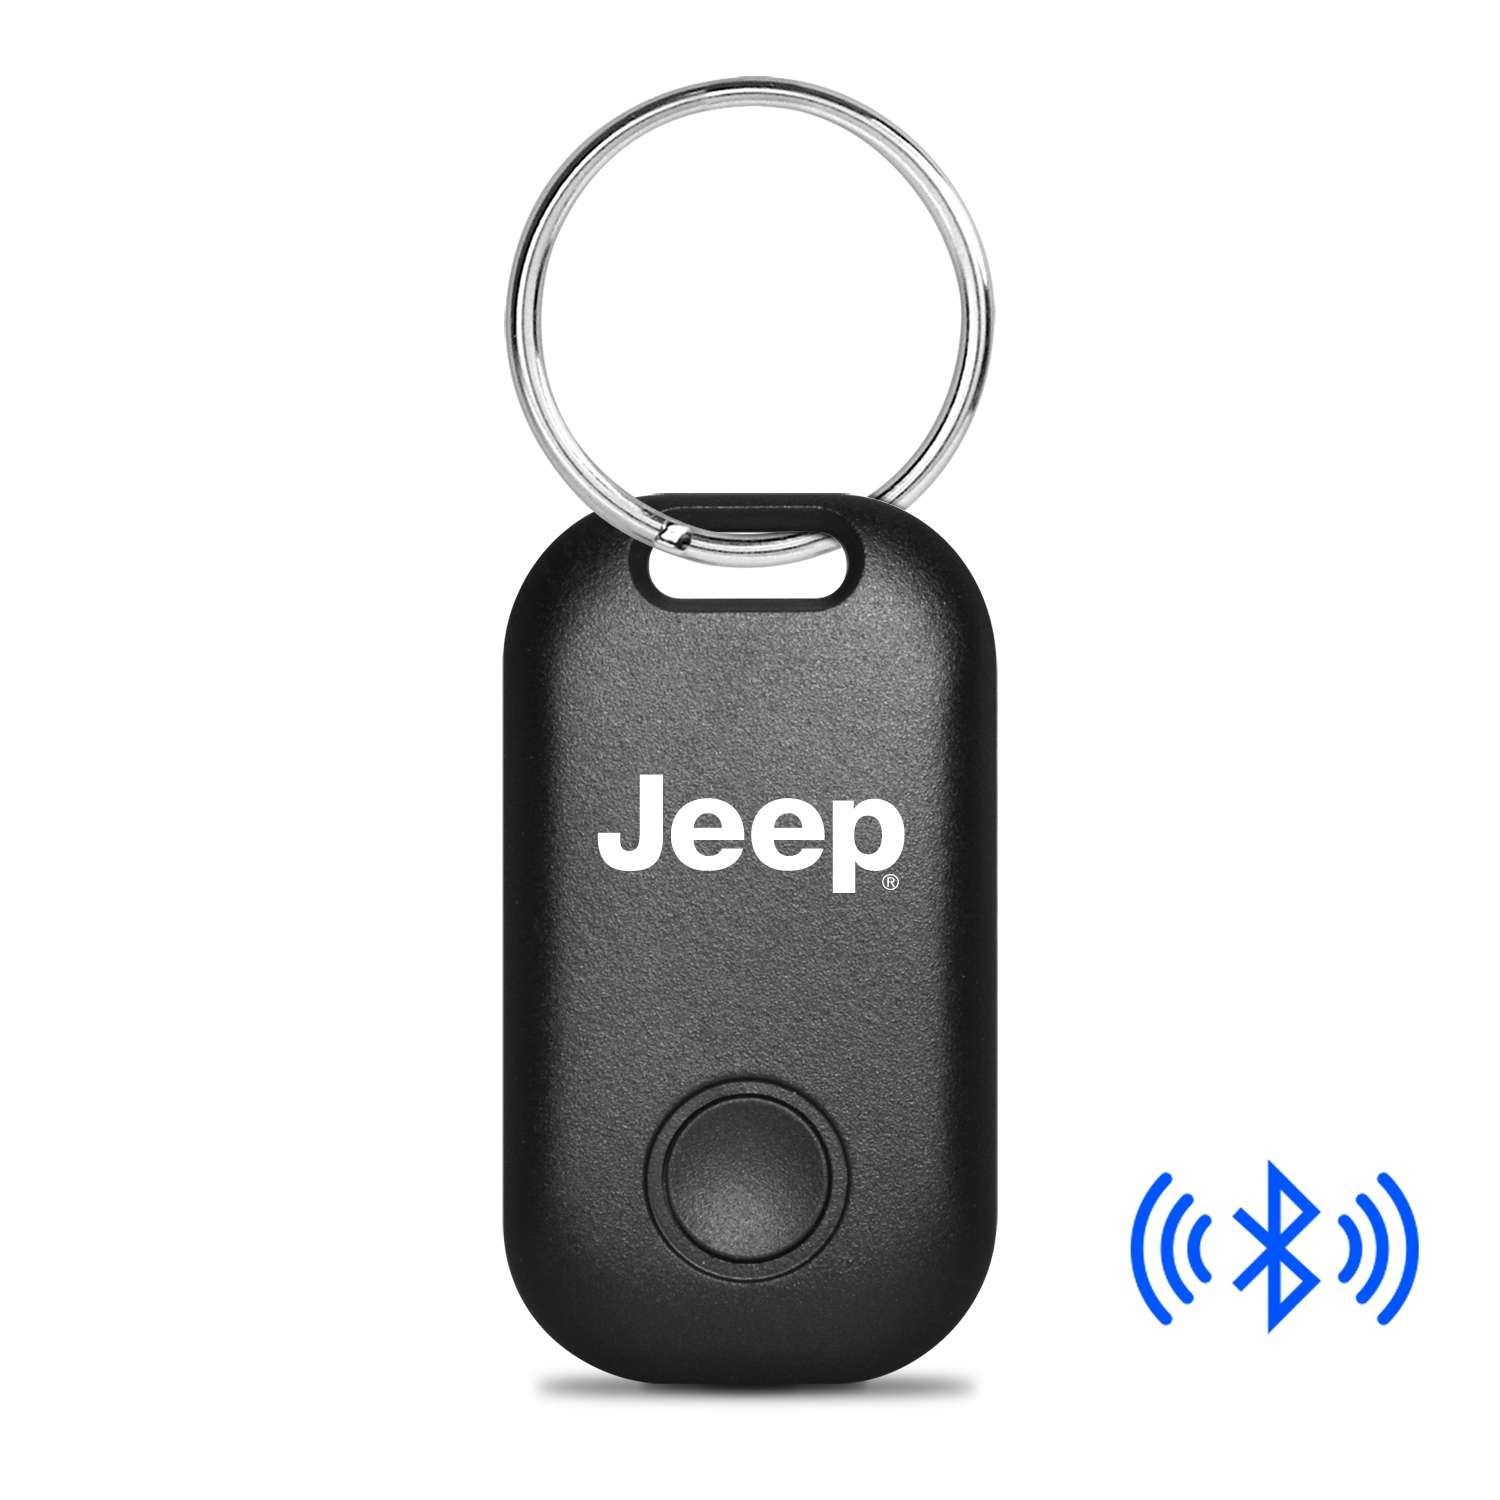 Jeep Bluetooth Smart Key Finder Black Key Chain